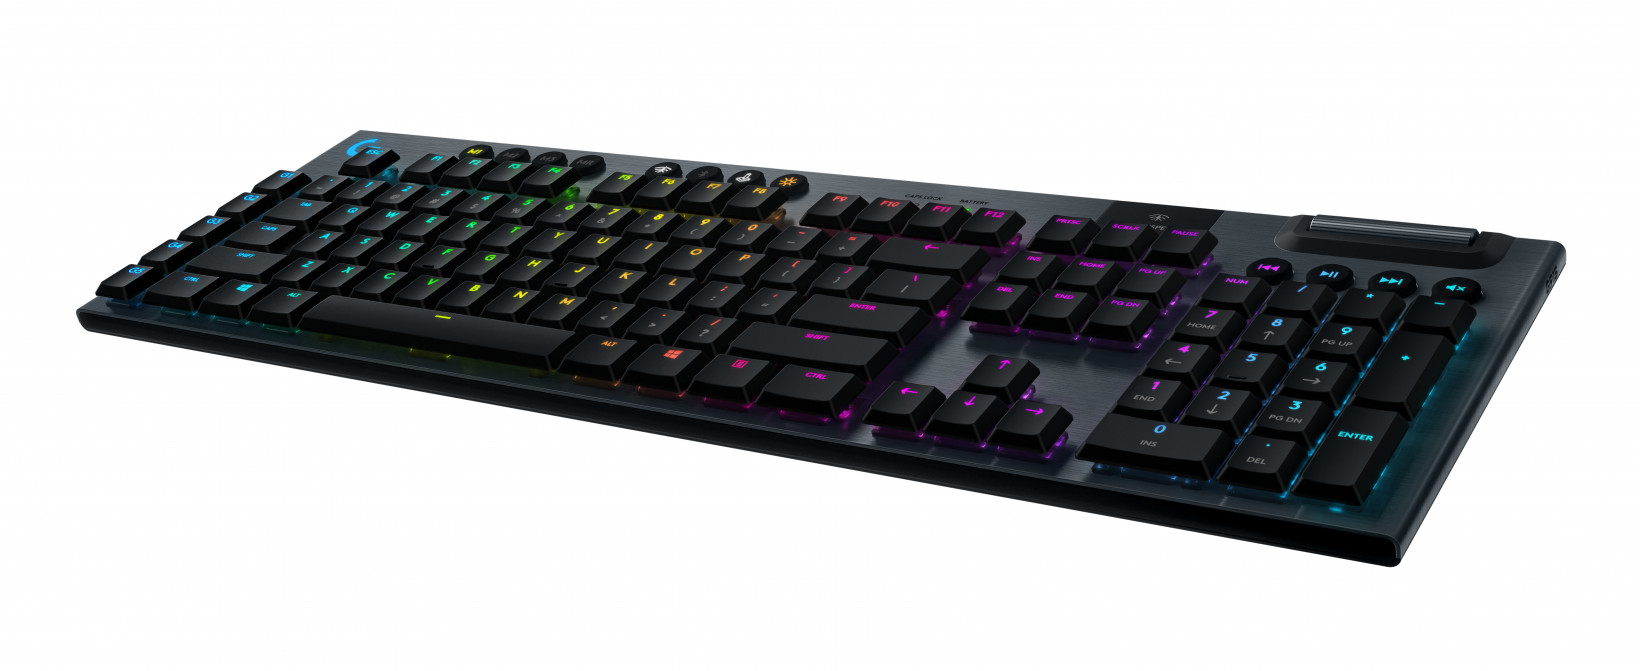 Logitech G debuts gorgeous new G815 and G915 mechanical